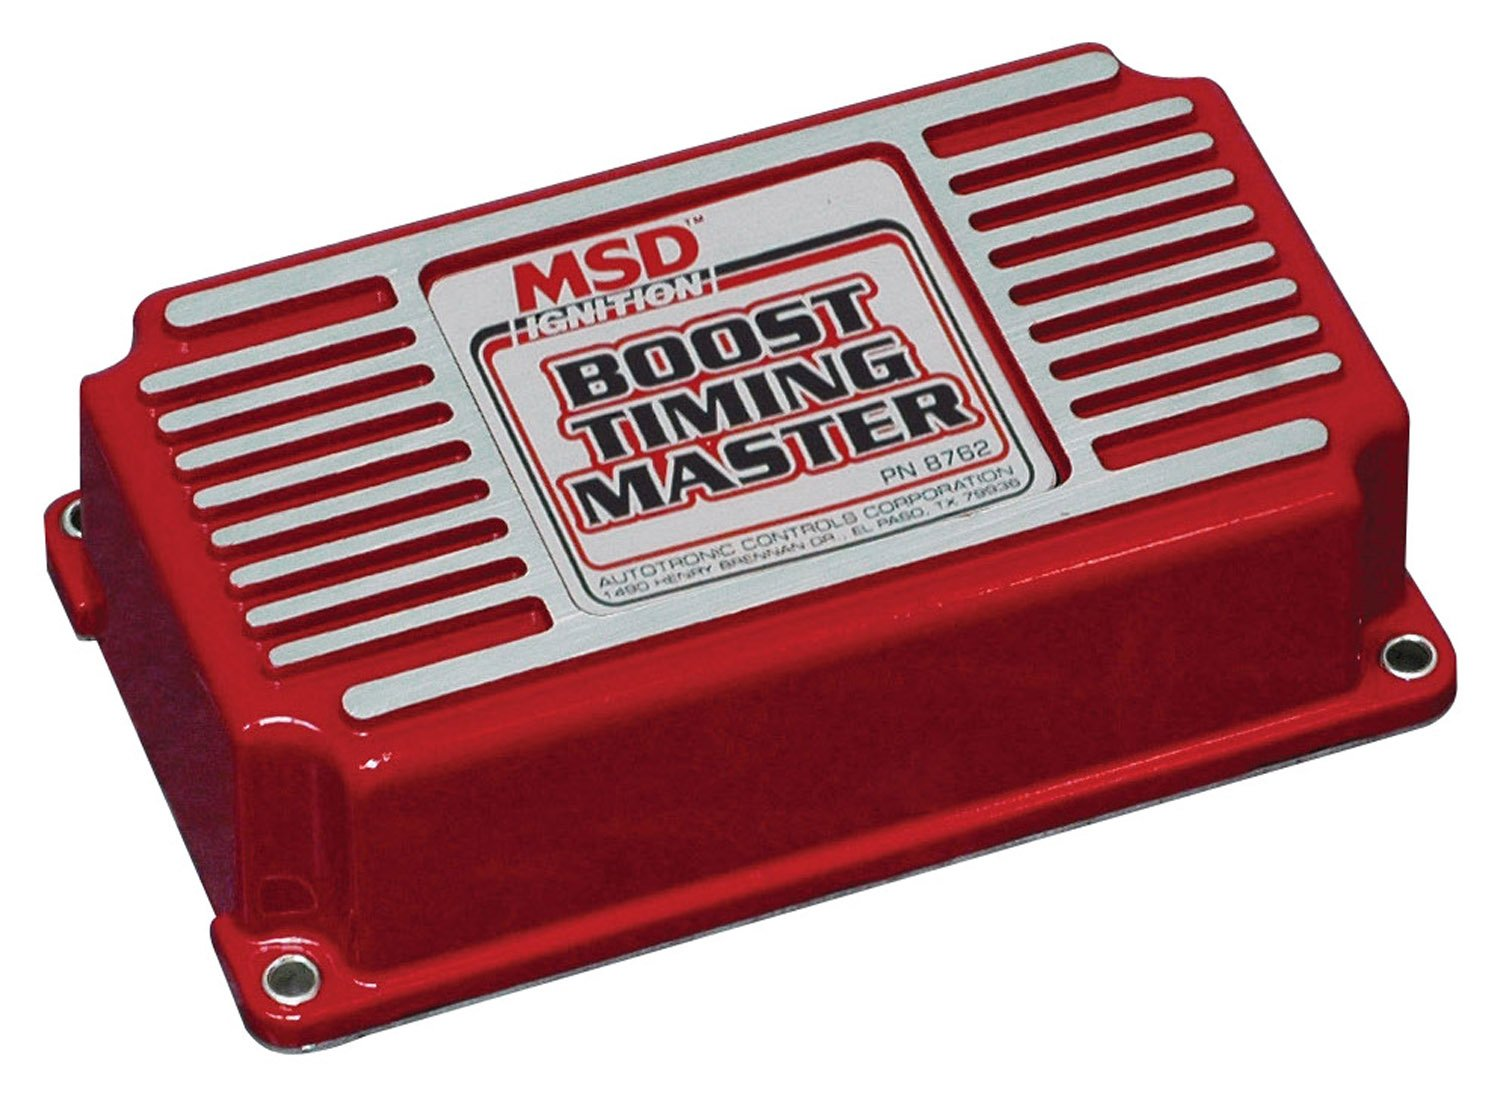 Msd 8762 Boost Timing Master For Use With Ignition Control Wiring Diagram 6btm Image